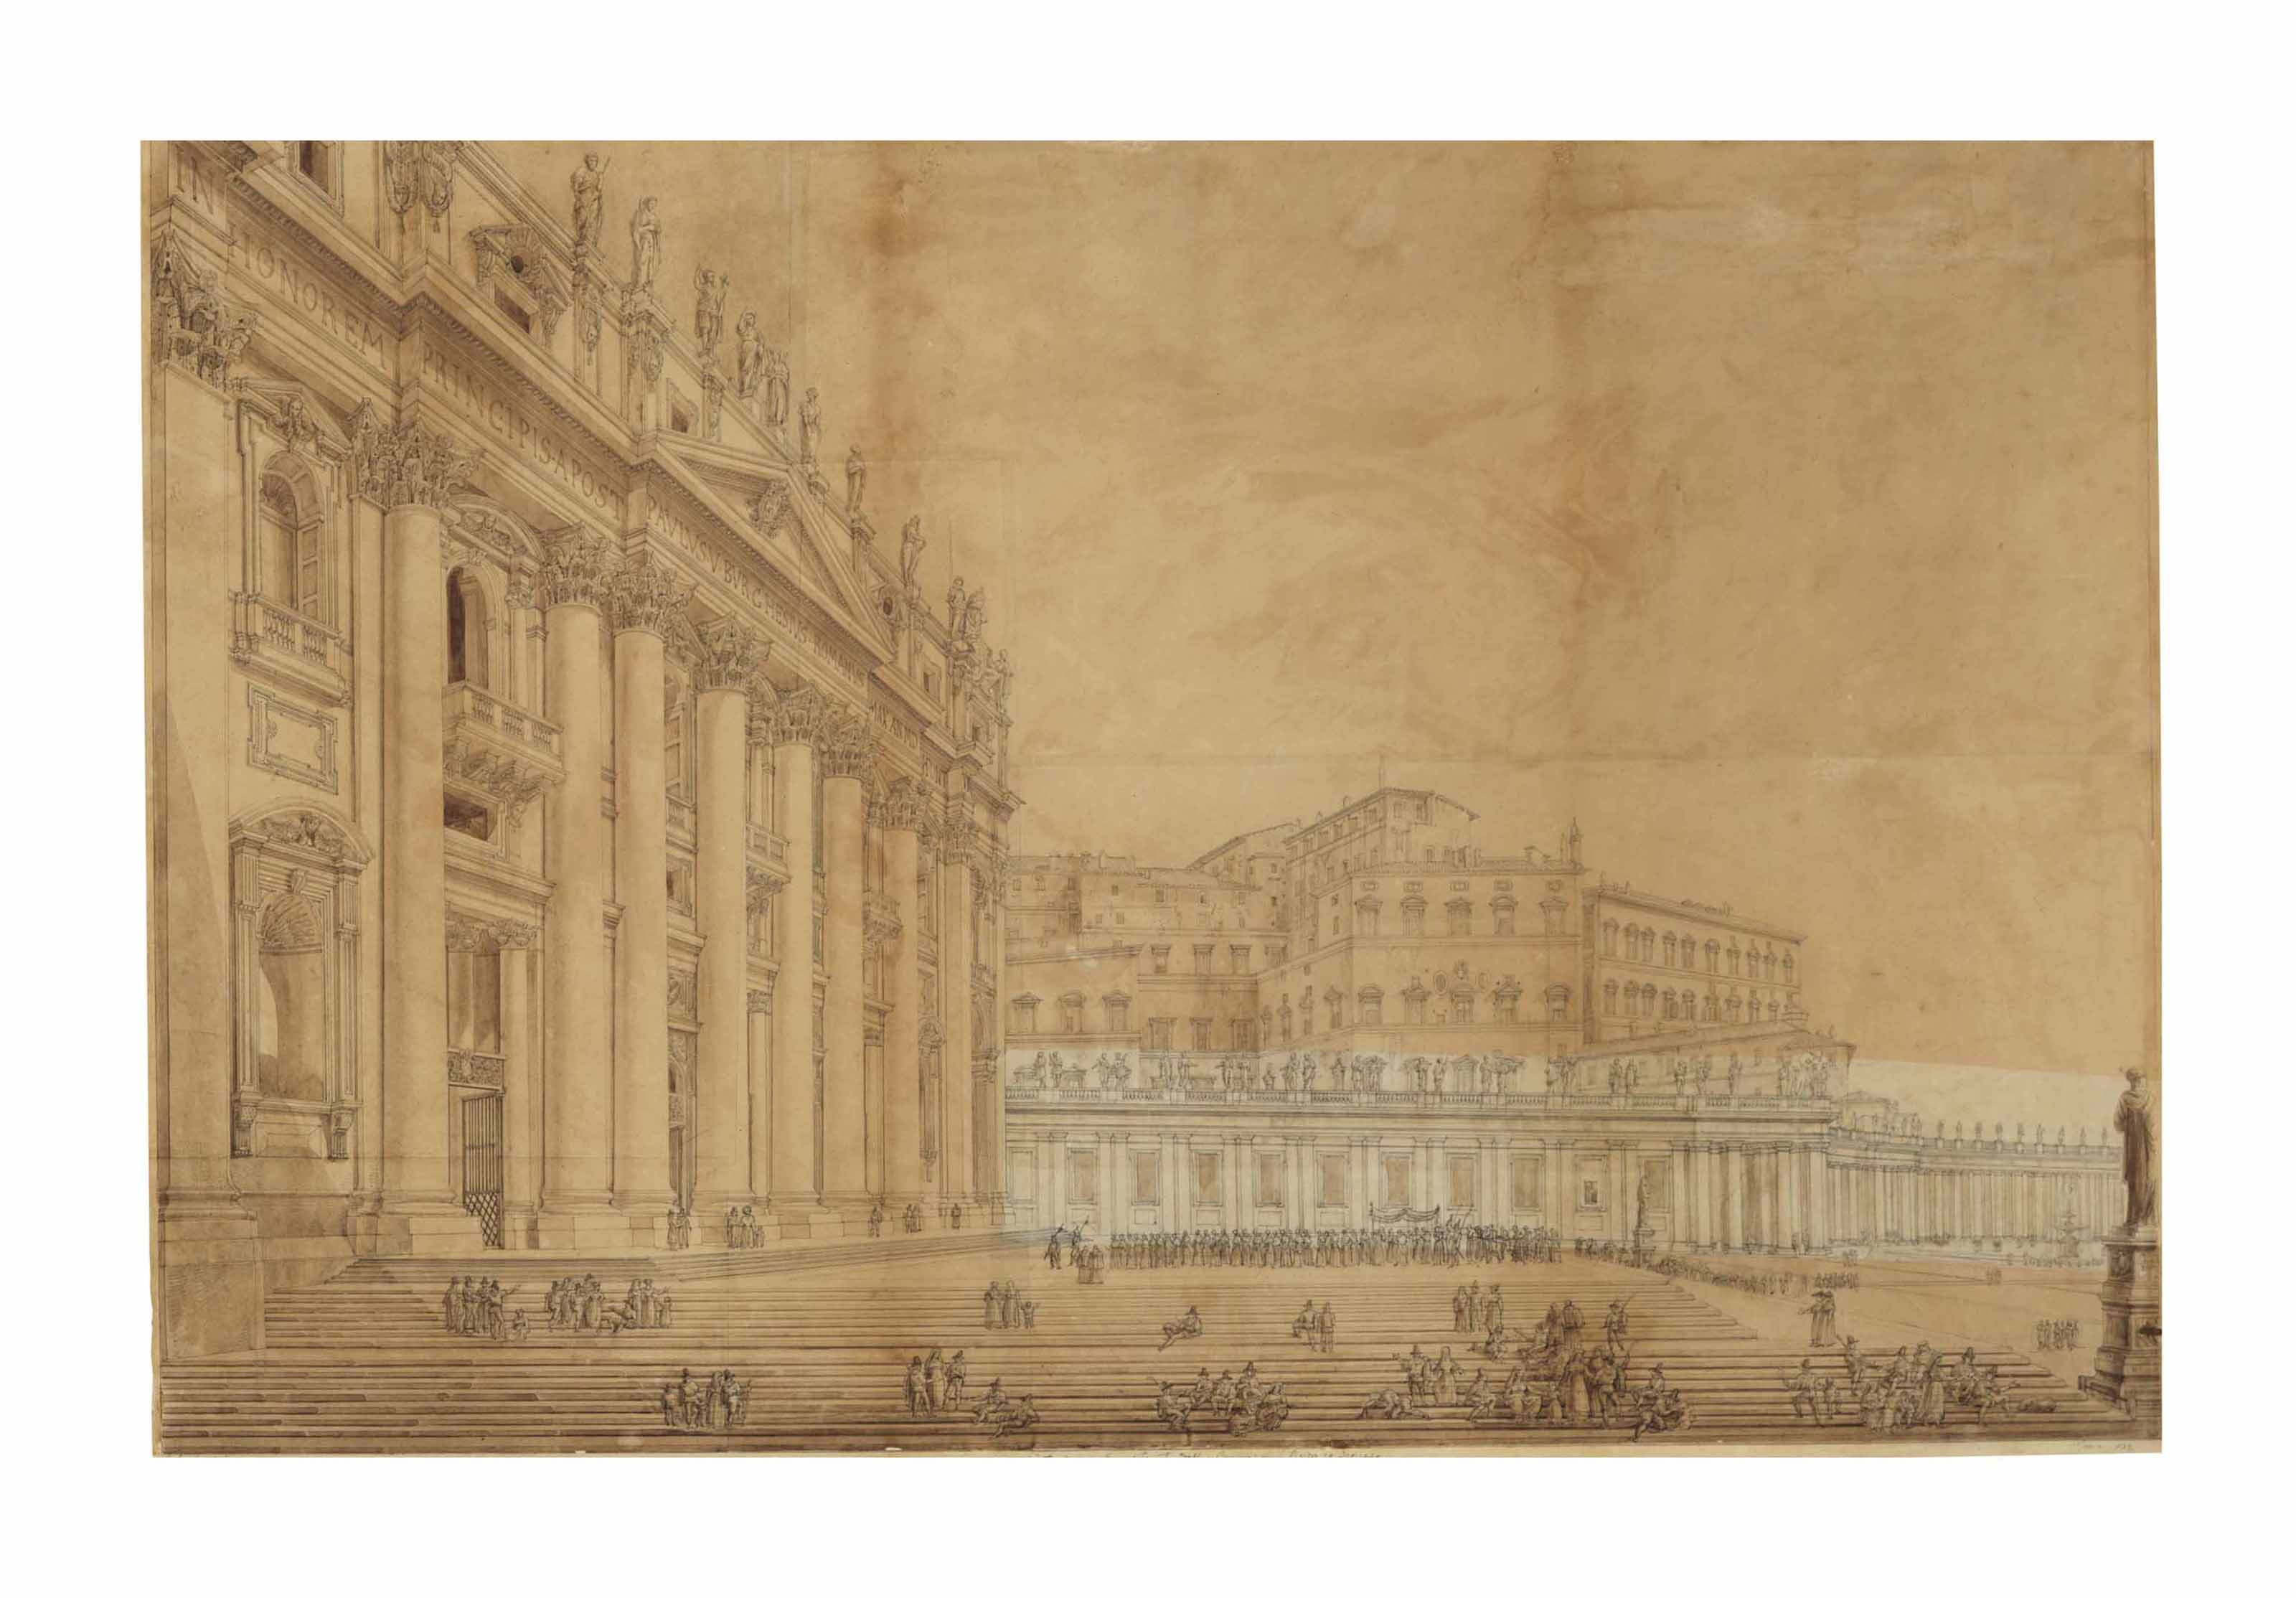 View of Saint Peter and the Apostolic Palace at the Vatican